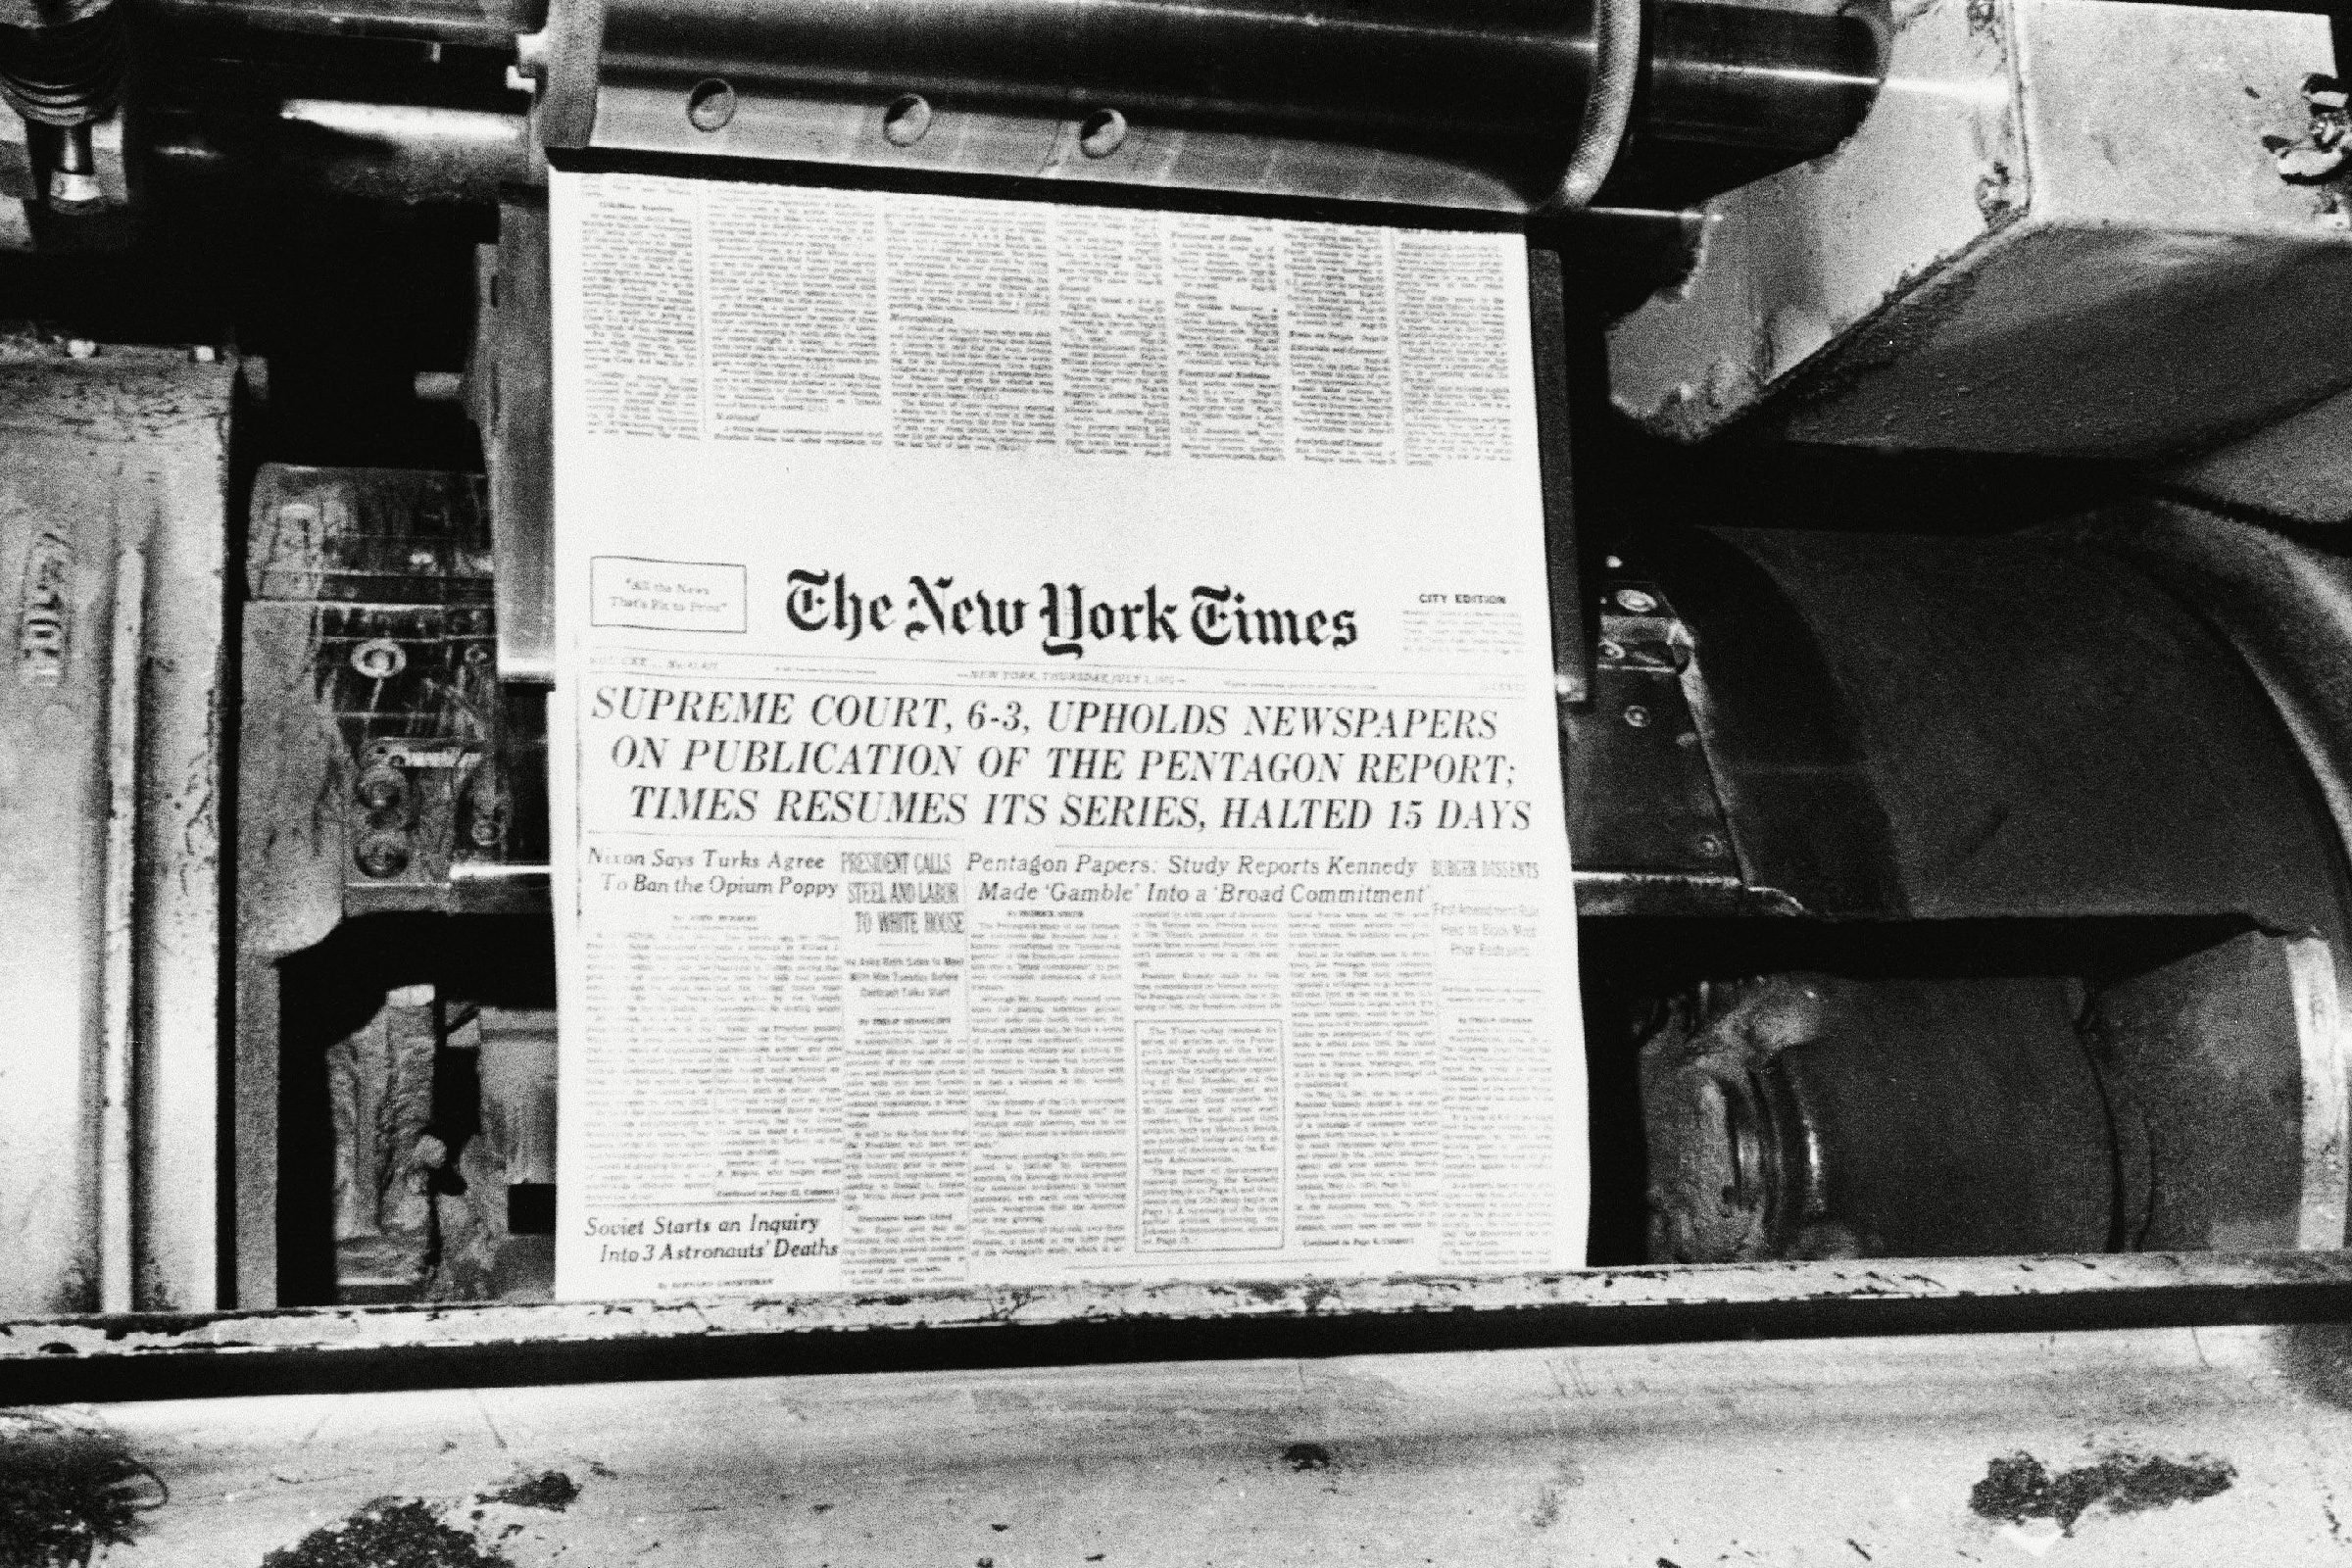 The New York Times resumed publication of its series of articles based on the secret Pentagon papers in its edition, after it was given the green light by the U.S. Supreme Court